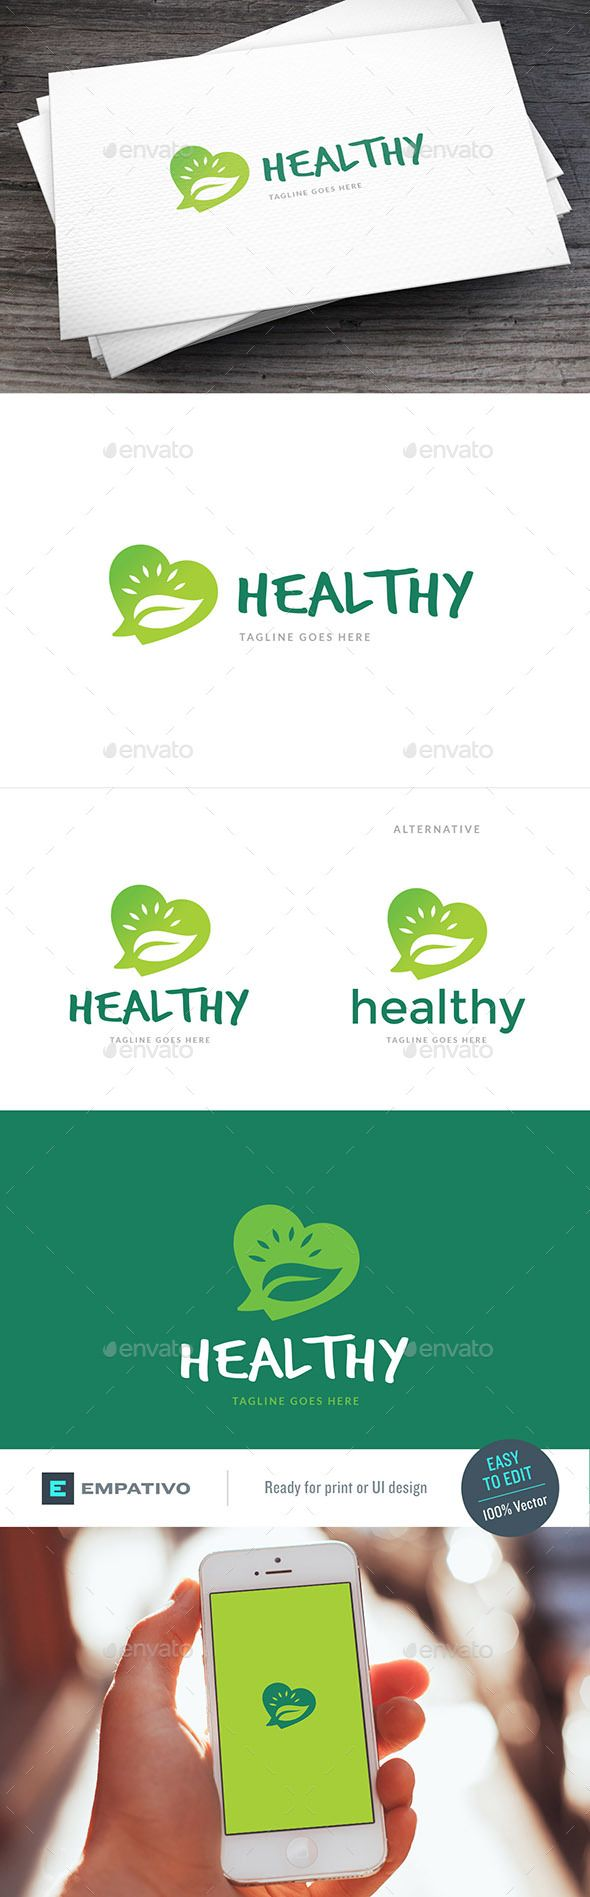 Healthy Fans Logo Template by empativo Modern, versatile and stylish logo template. Ideal for a wide range of uses. Features  100% vector. Easy to edit color / text